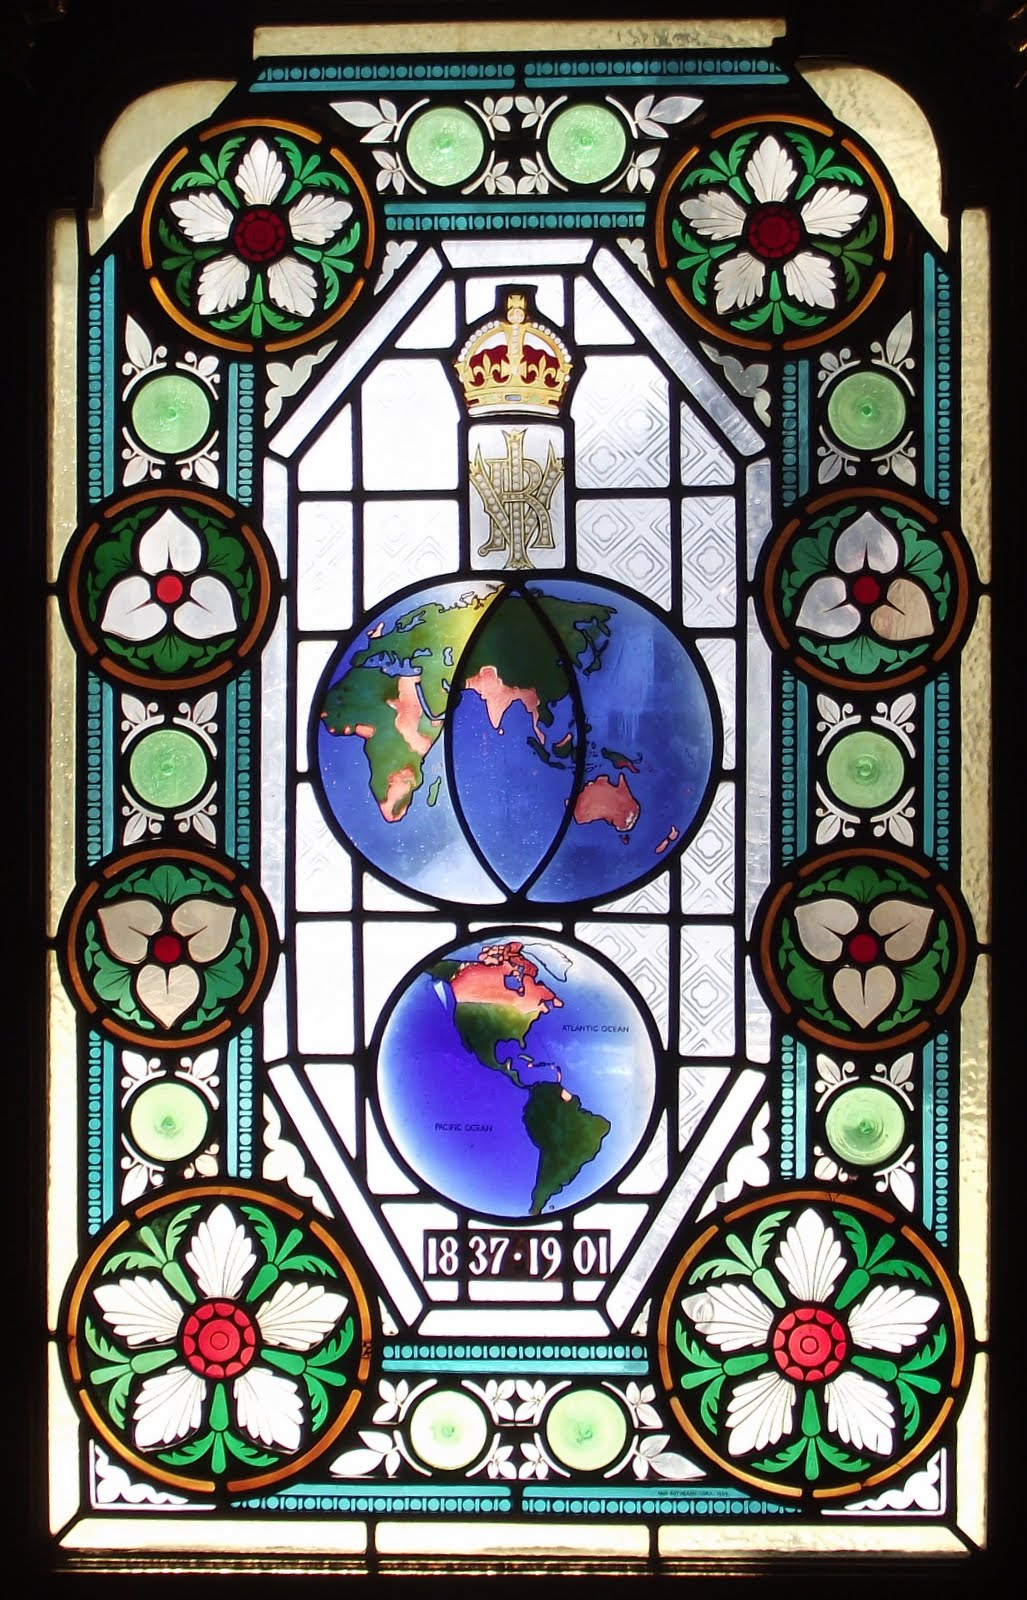 Queen Victoria's Reign stained glass at The Champion Pub